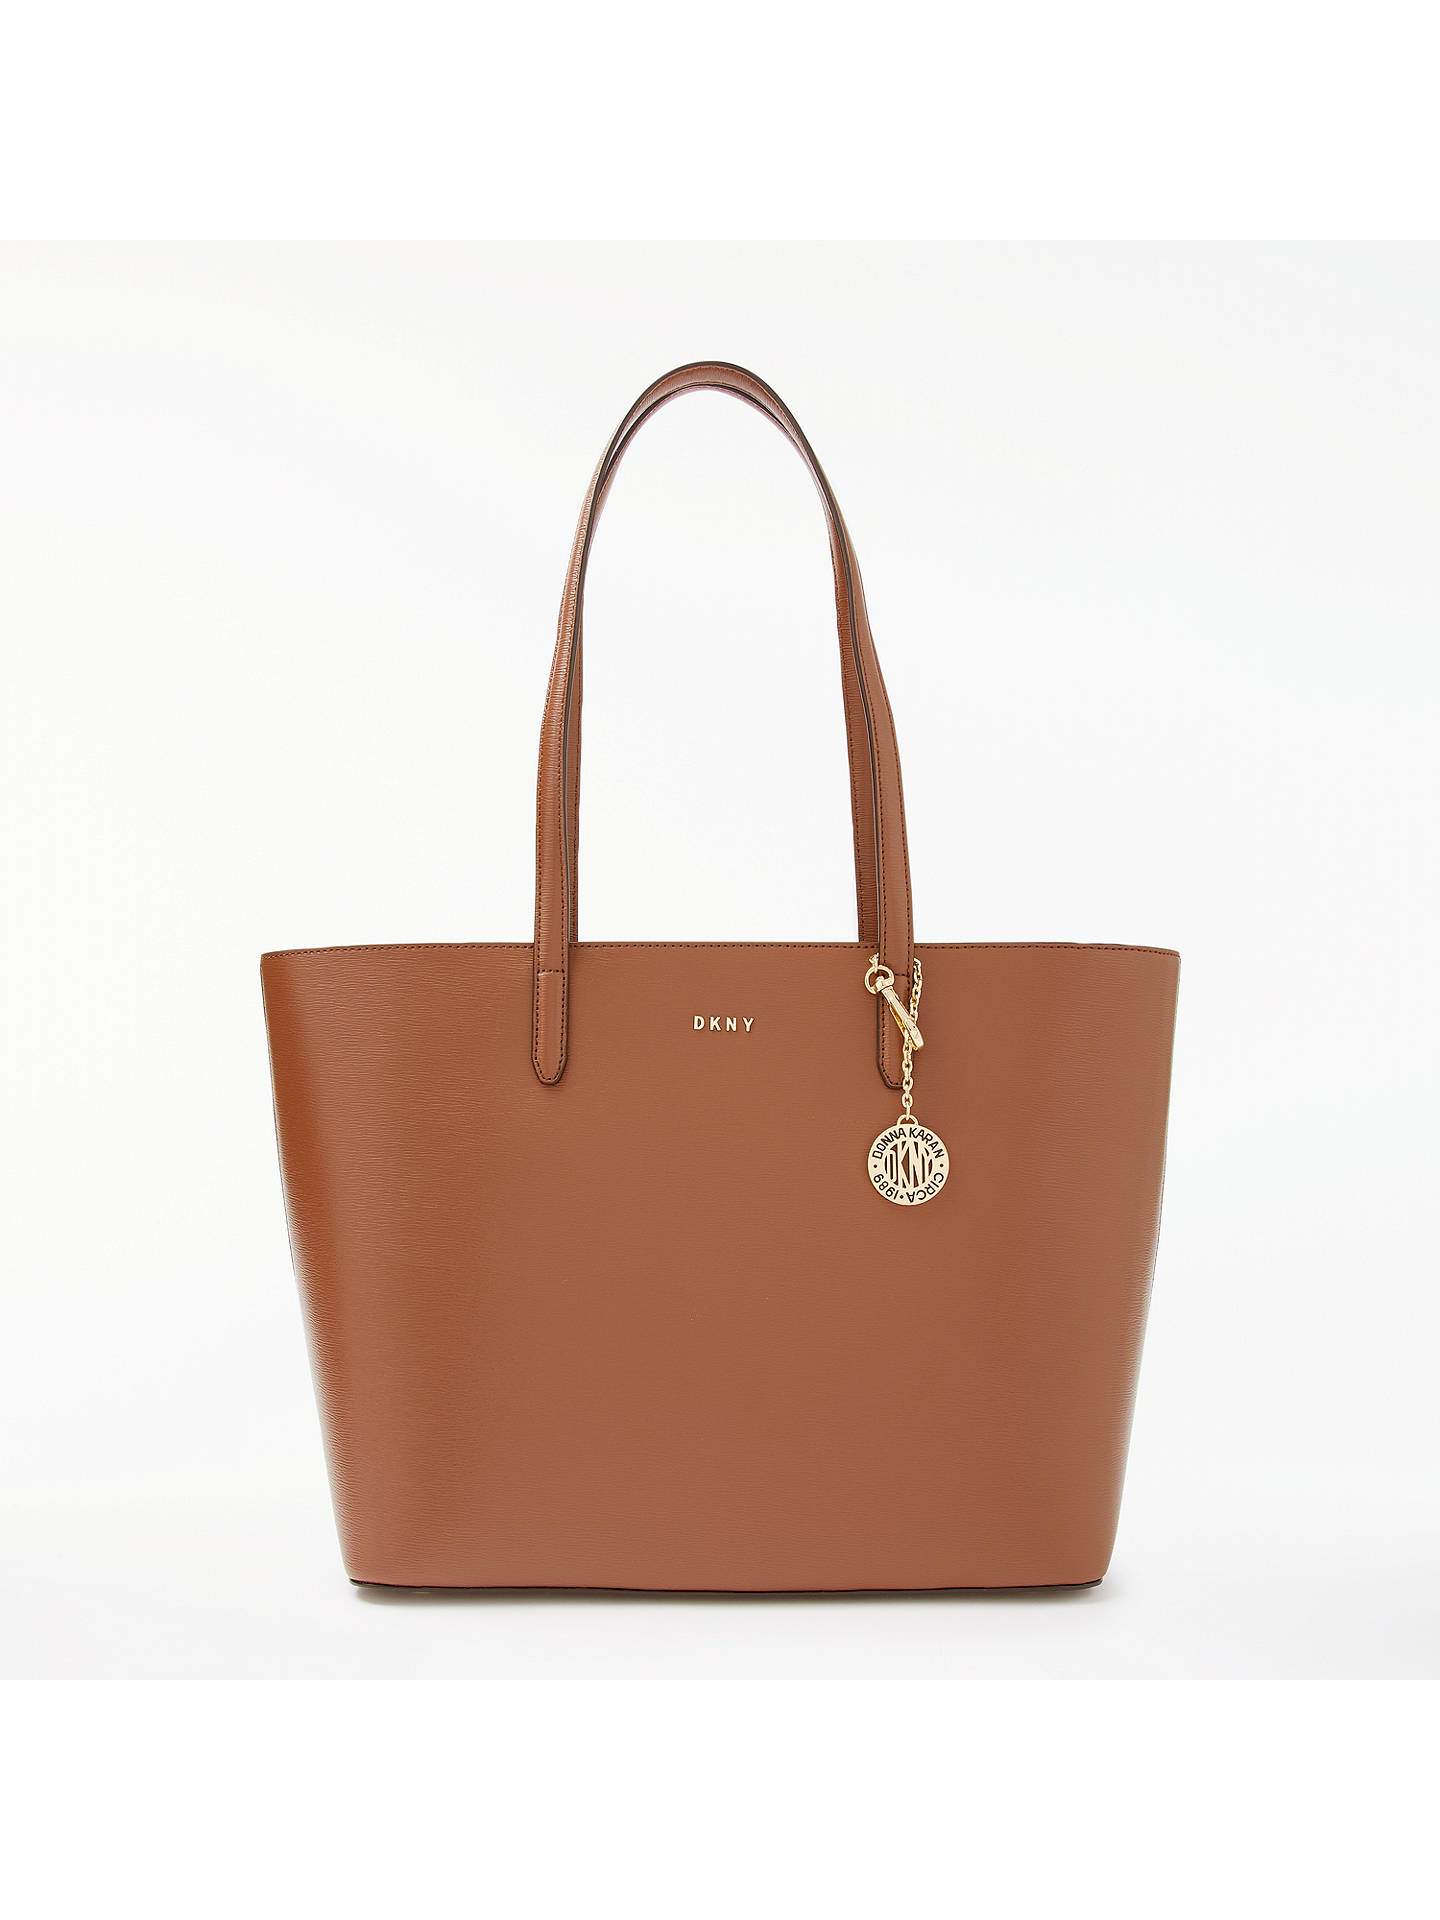 c8afd049d Buy DKNY Sutton Leather Large Tote Bag, Brown Online at johnlewis.com ...